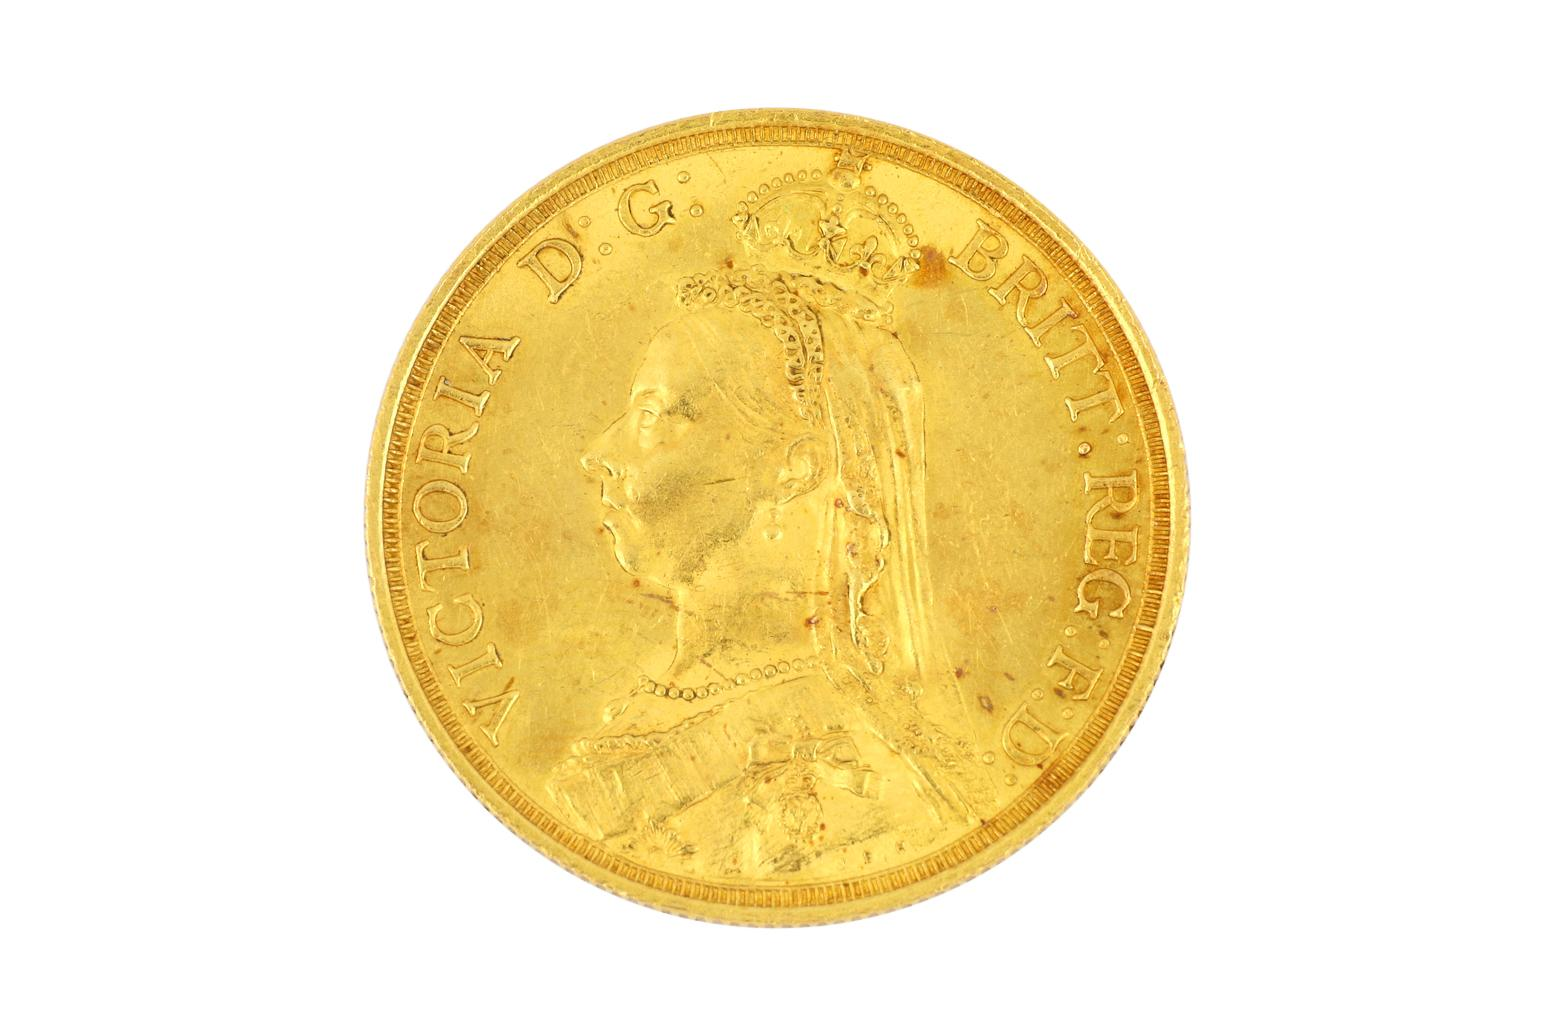 Very rare 22ct gold 1887 double sovereign coin